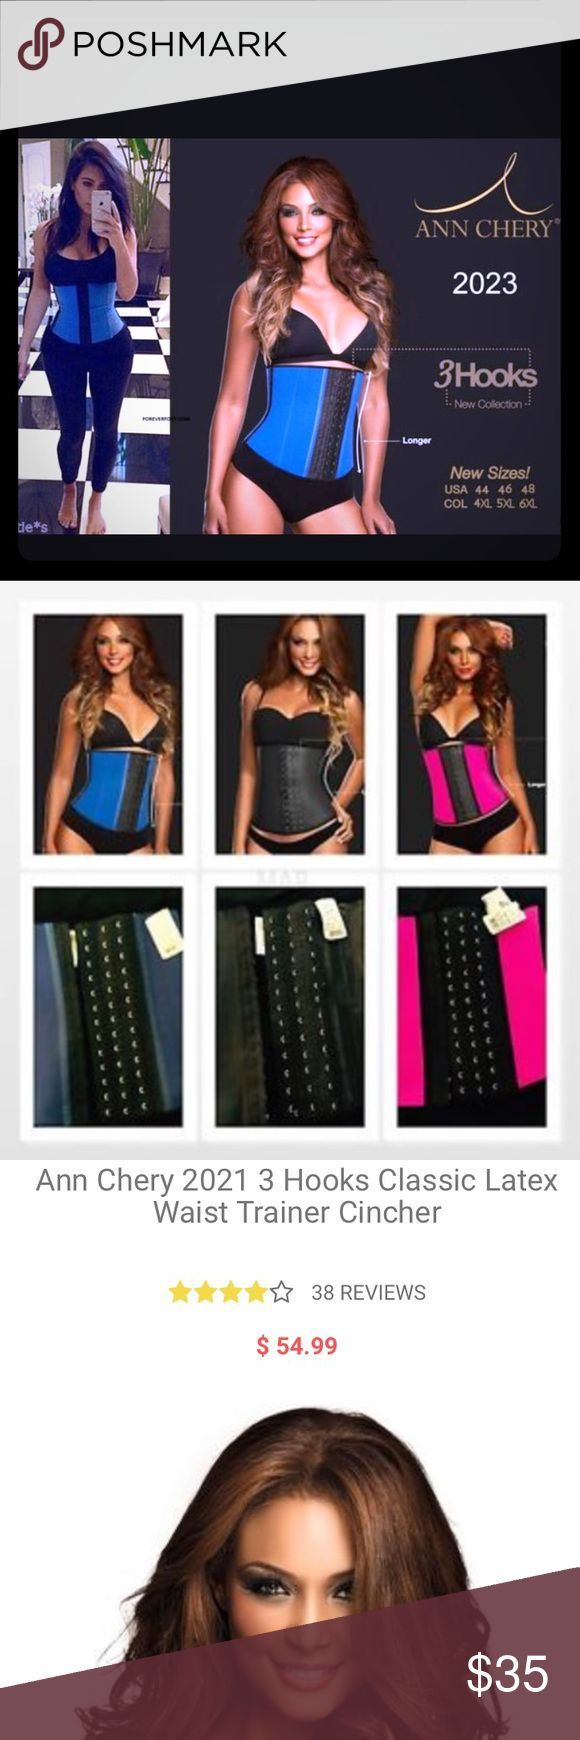 Ann Chery - Waist Trainer Are you ready to maximize your workout with a faja style waist cinching garment the workout band is an ann cherry waist cincher that you wear anytime you're going to be active. Take it to the gym or for a run outside and let it add impact to your healthy lifestyle routine. Here's how it works. You wrap the band around your midsection. This action creates compression in your core, stimulating thermal activity and ramping up perspiration. Ann Chery Other